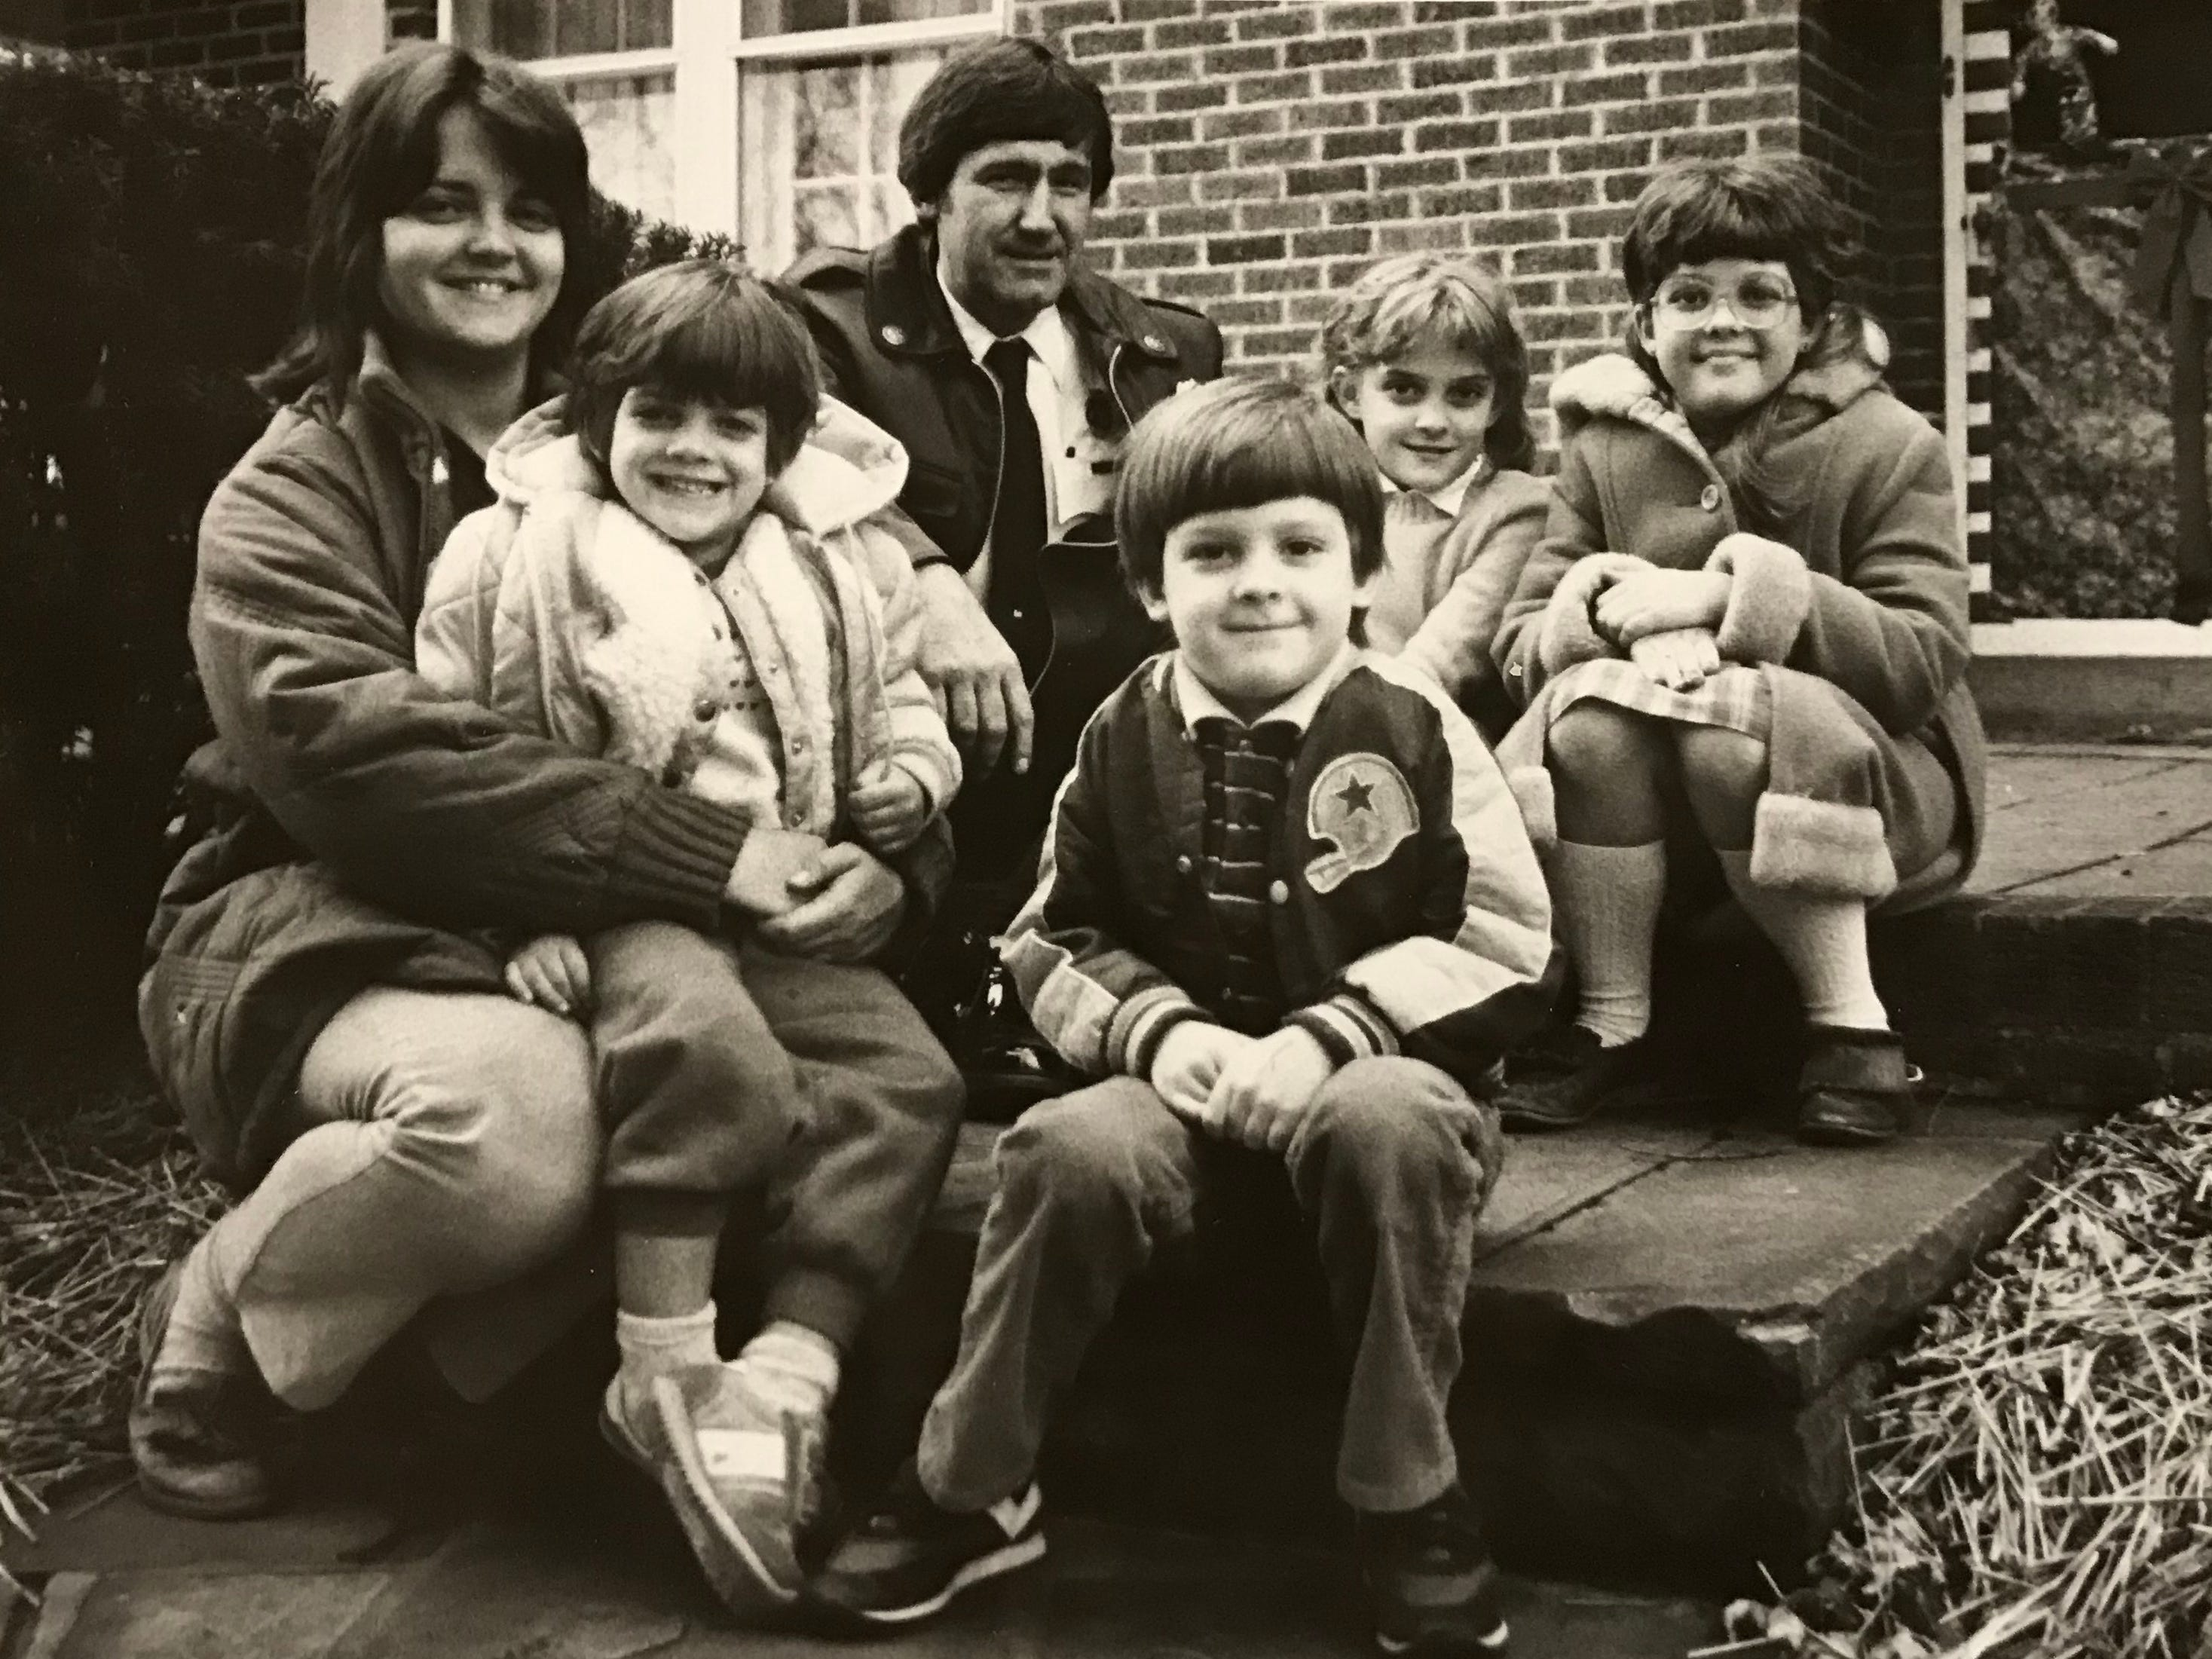 In January 1985, Jennifer Willis, far left, and her children - from left, Alison, 4, Wesley 6, Tiffany, 7, and Melissa, 9 - sit on the stop of their East Fifth Street home with Chillicothe Fire Lt. Richard Copp, background. The family received a commendation for the way they responded when their home caught fire. A smoke alarm quickly alerted Willis to the early morning fire and they put to use their fire drill plan including safety tips the kids learned at school.